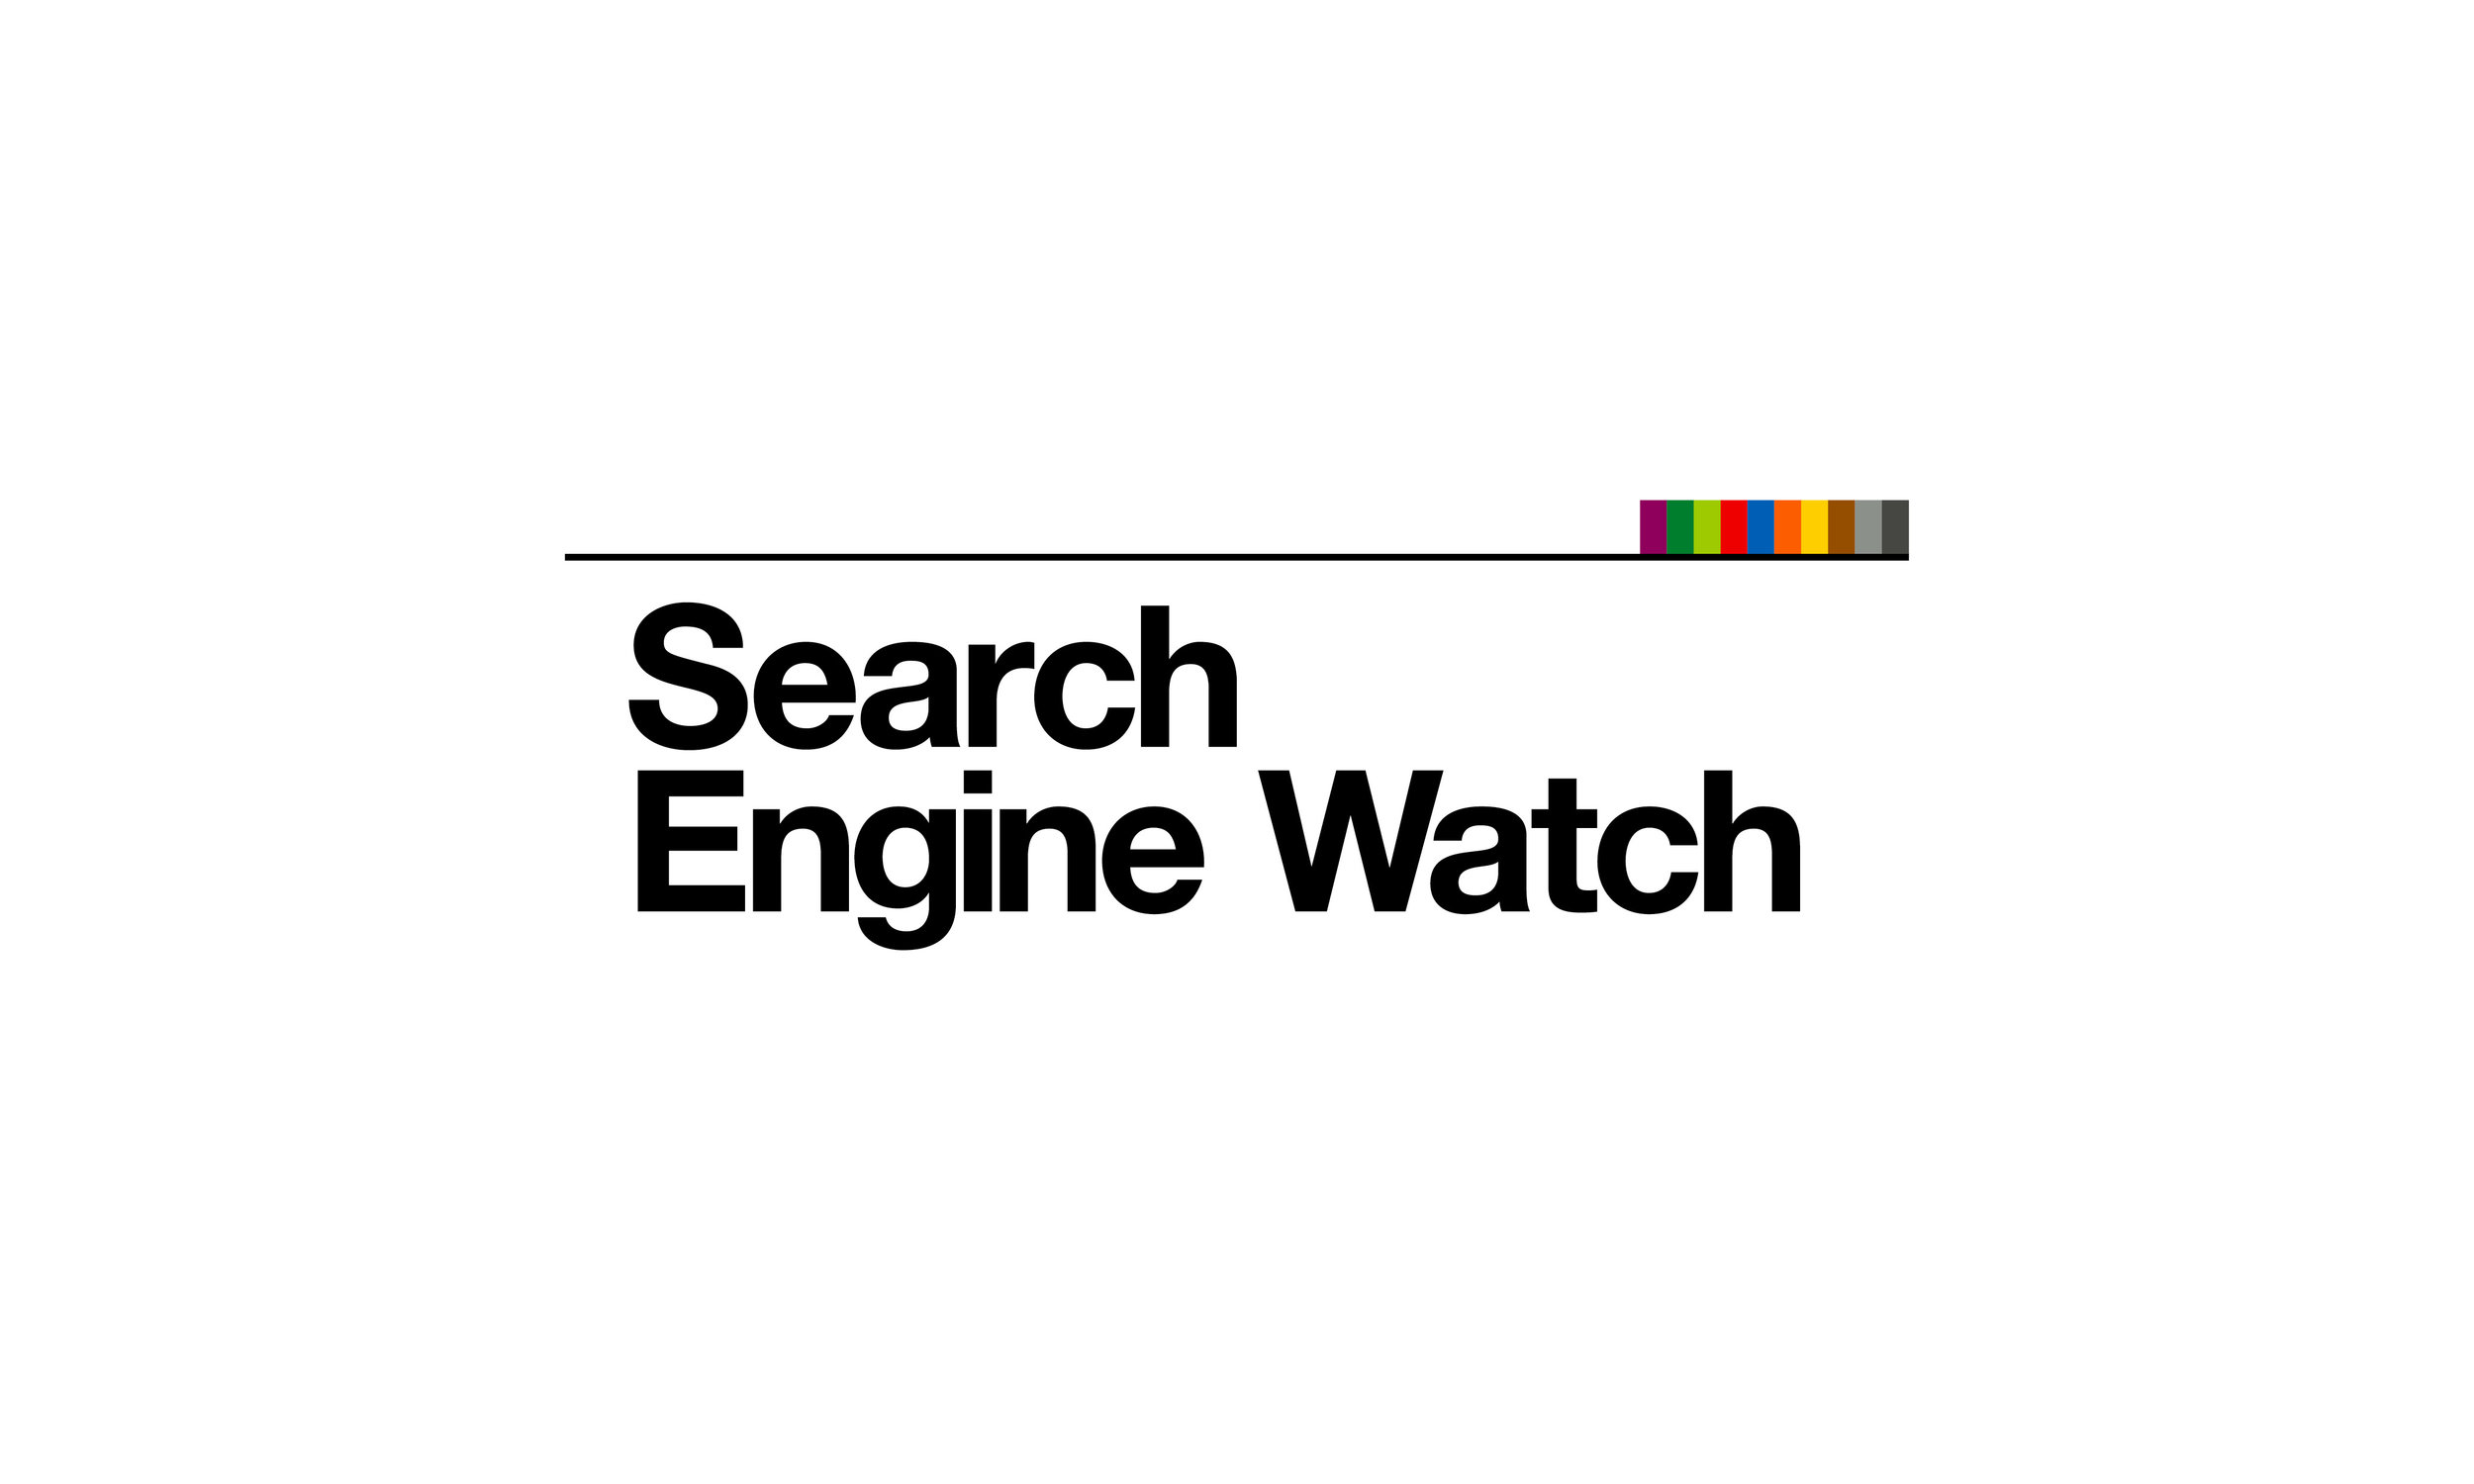 Client: Search Engine Watch